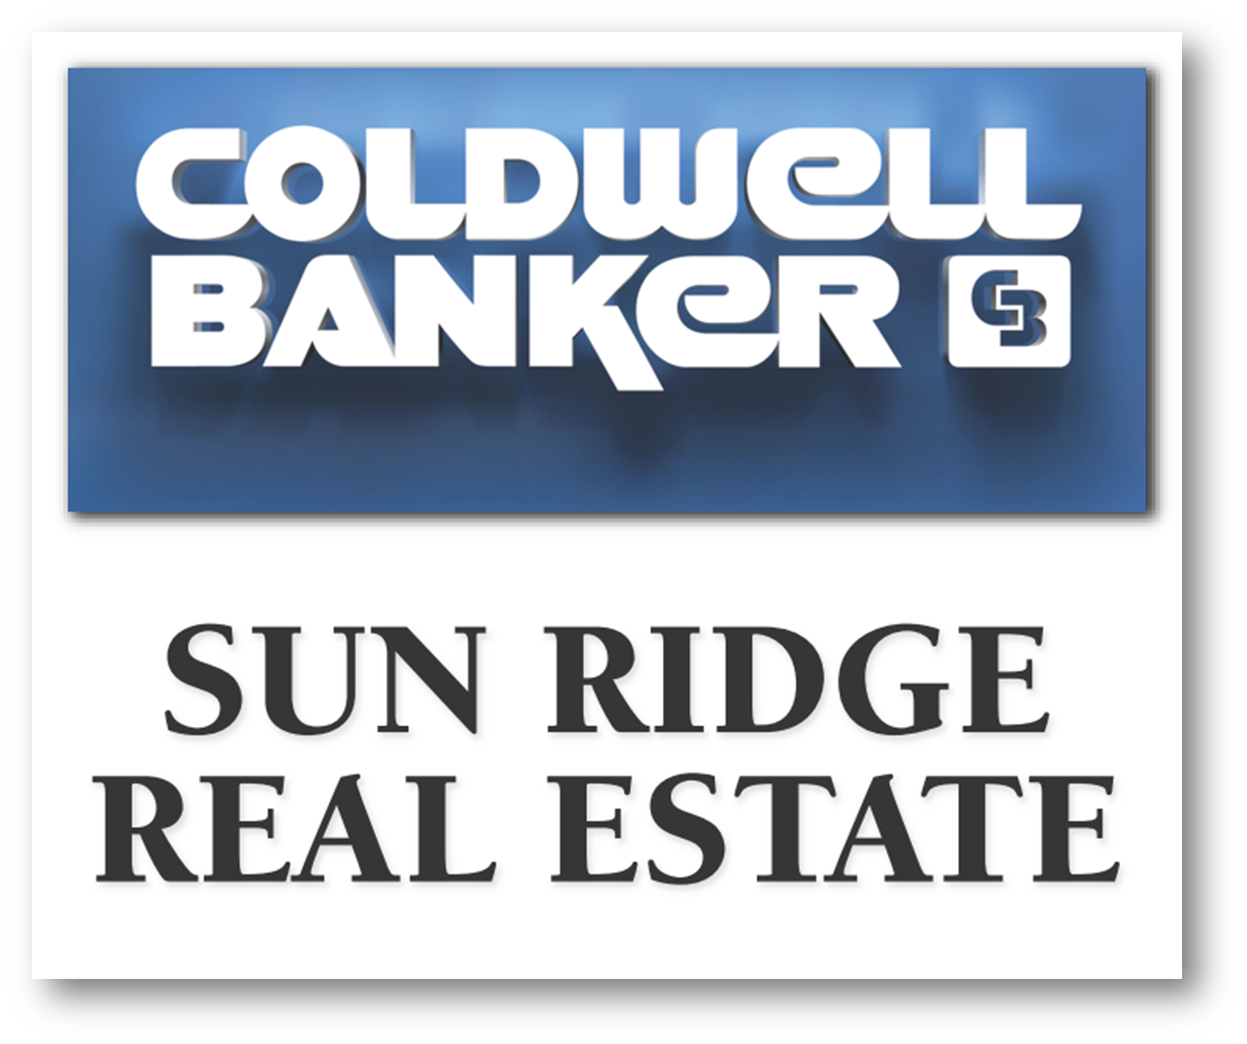 Coldwell Banker Sun Ridge Real Estate logo